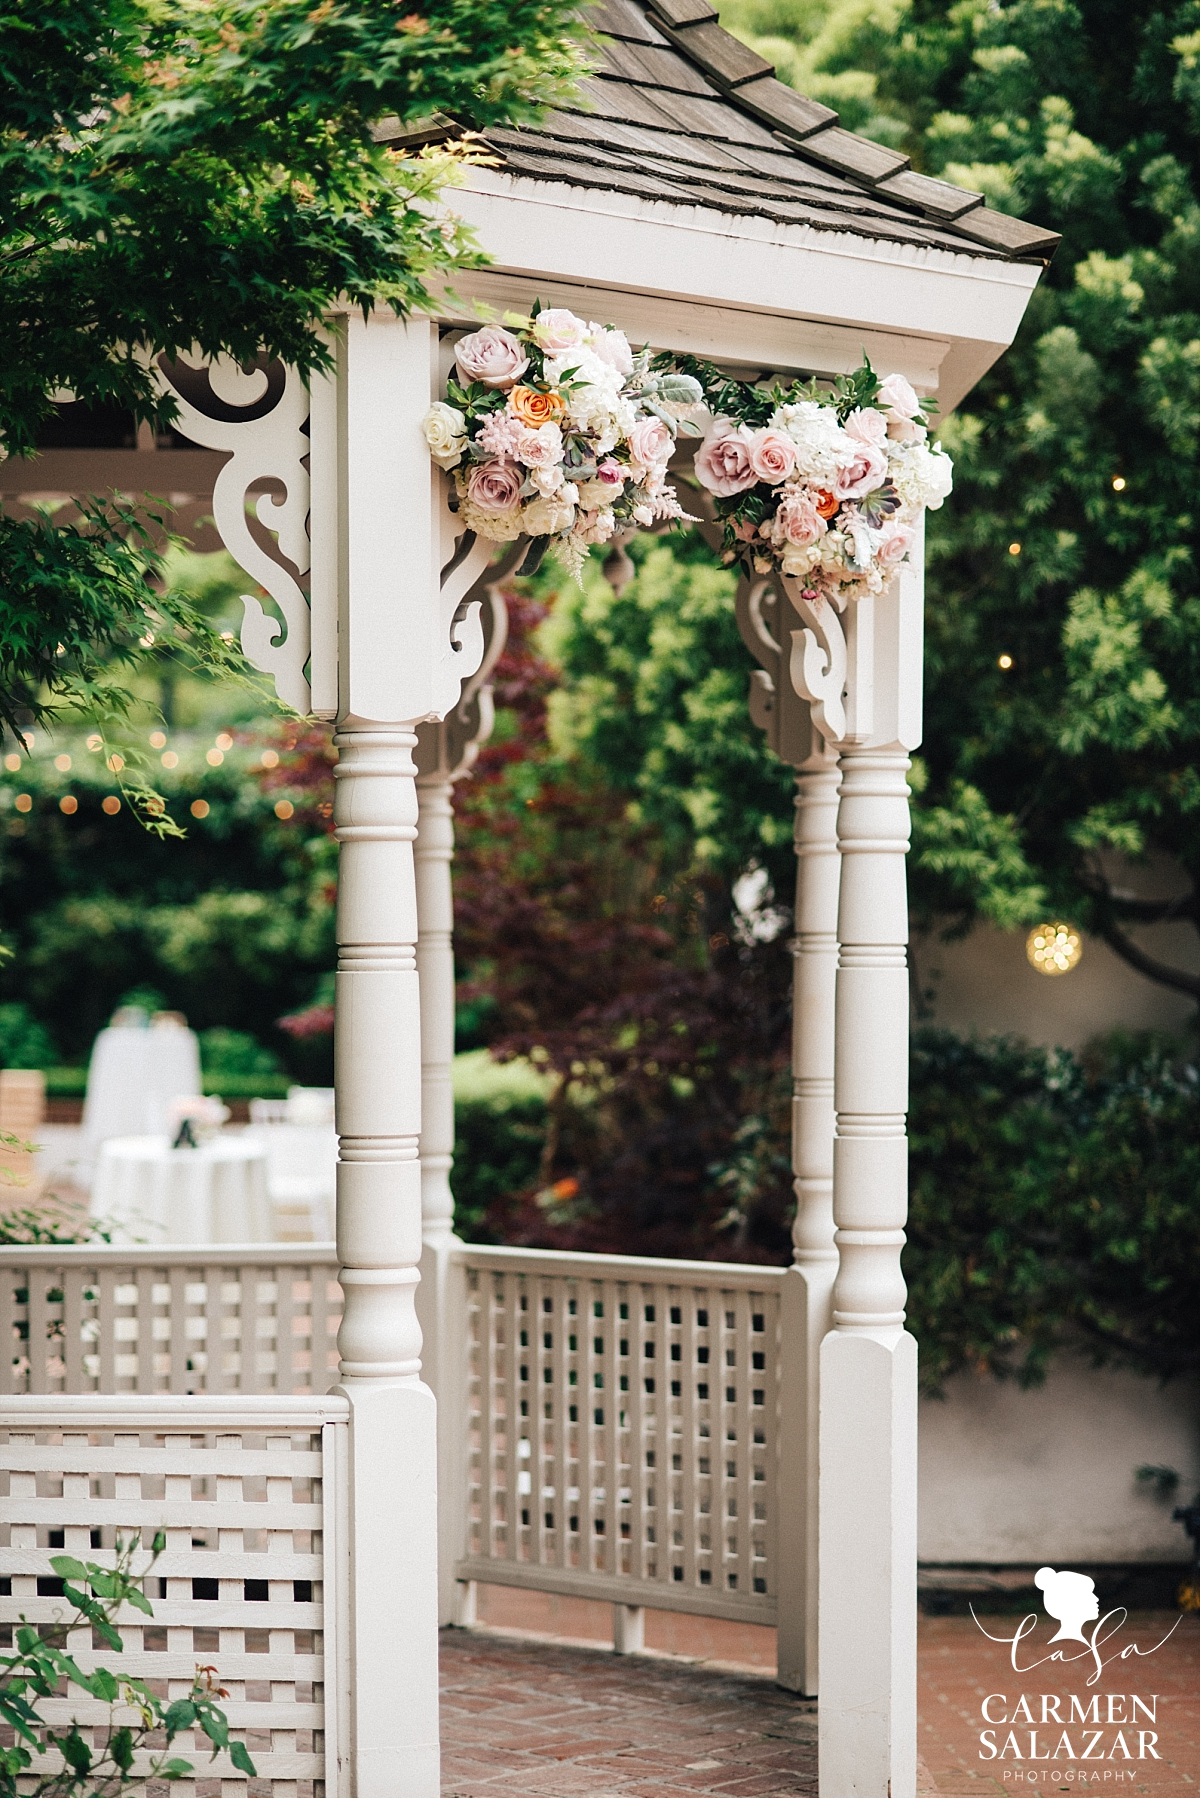 Vizcaya Mansion wedding ceremony - Carmen Salazar